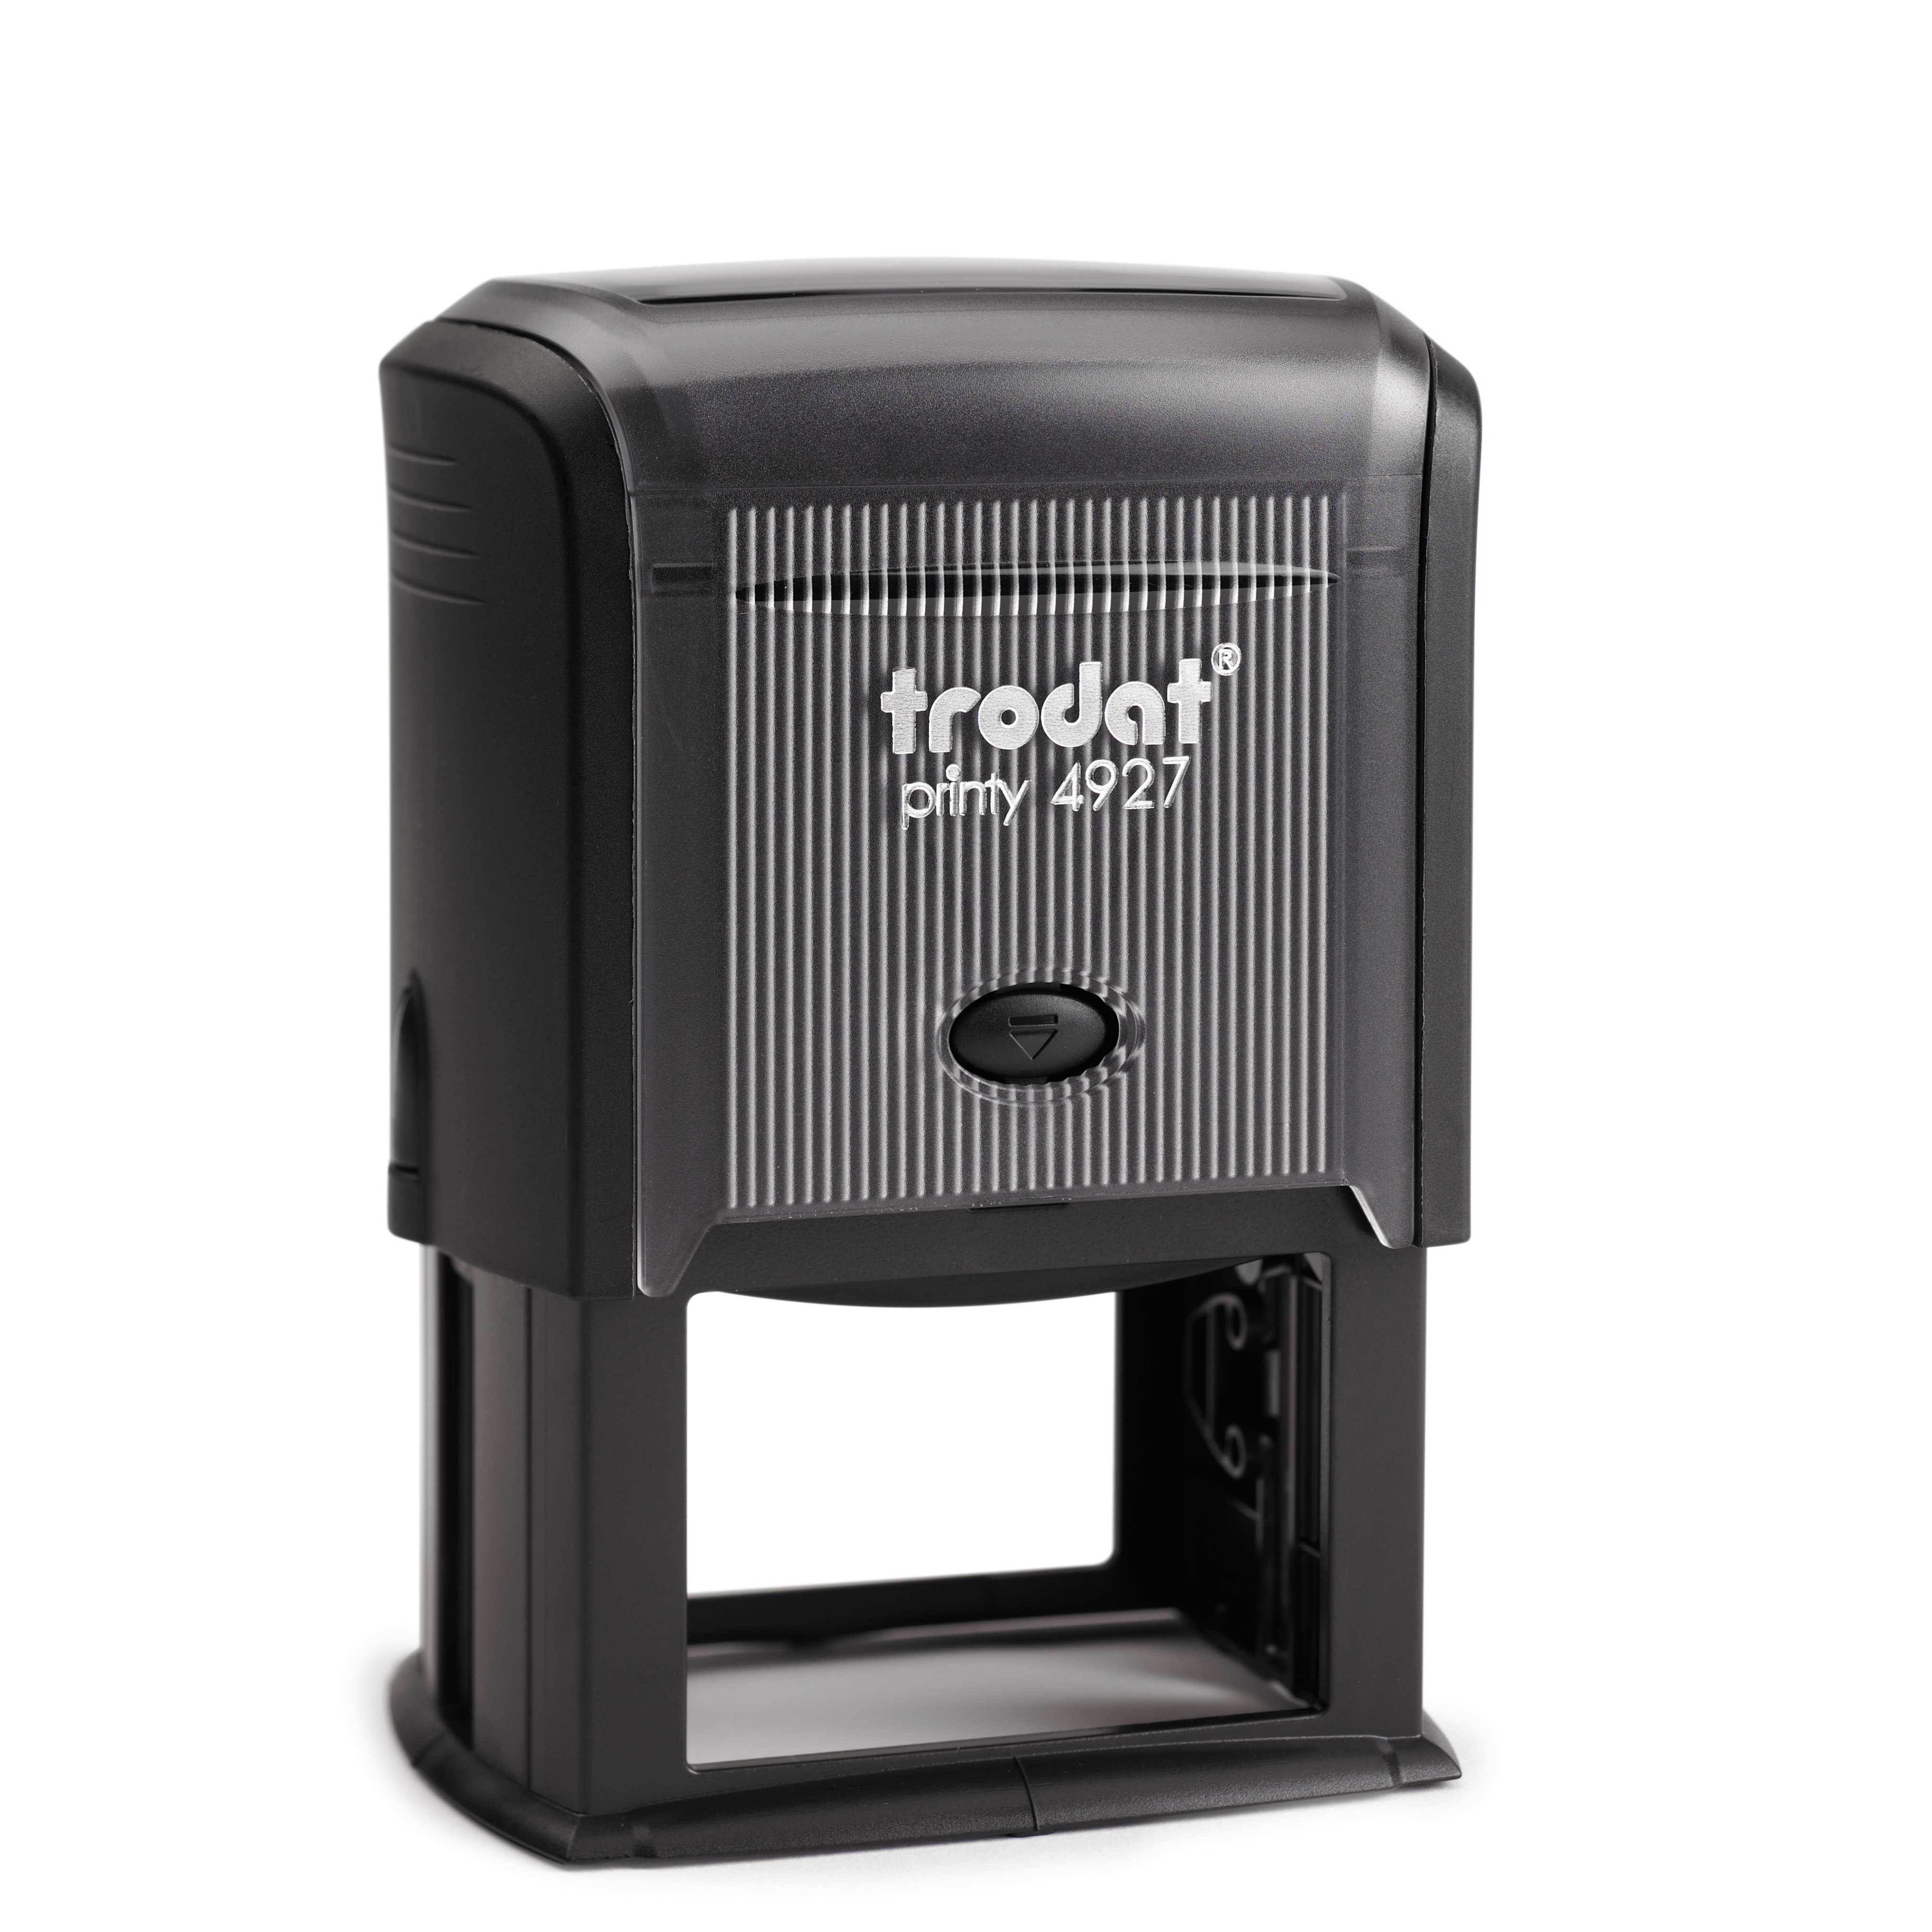 Trodat Self Inking 4927 - Black Ink